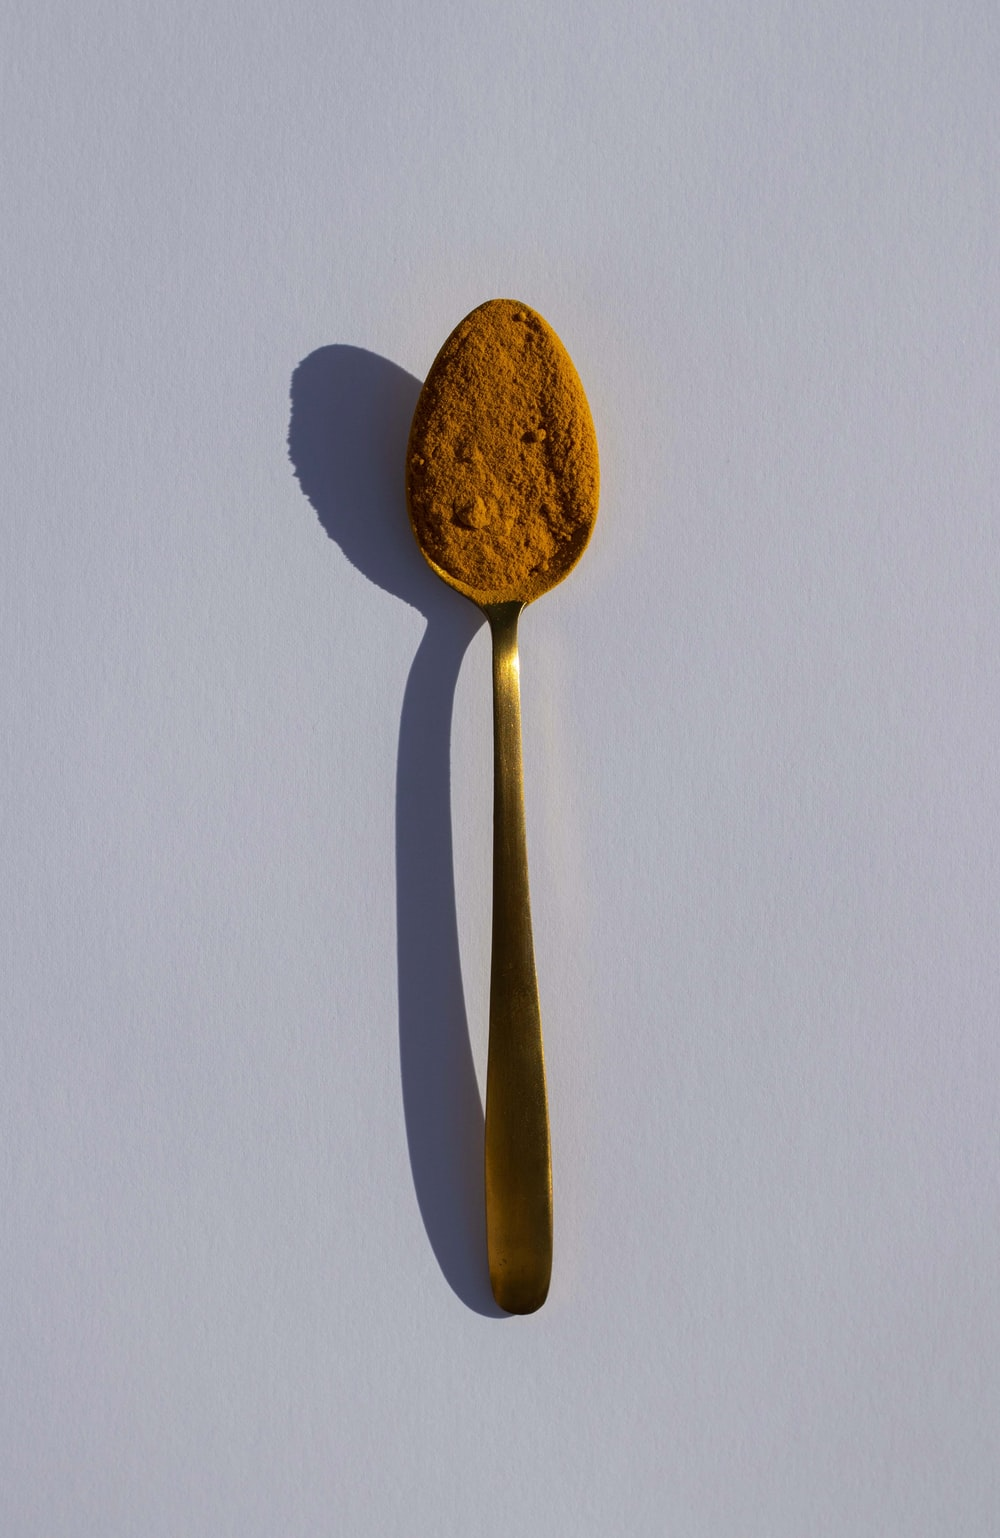 brown wooden spoon on white table